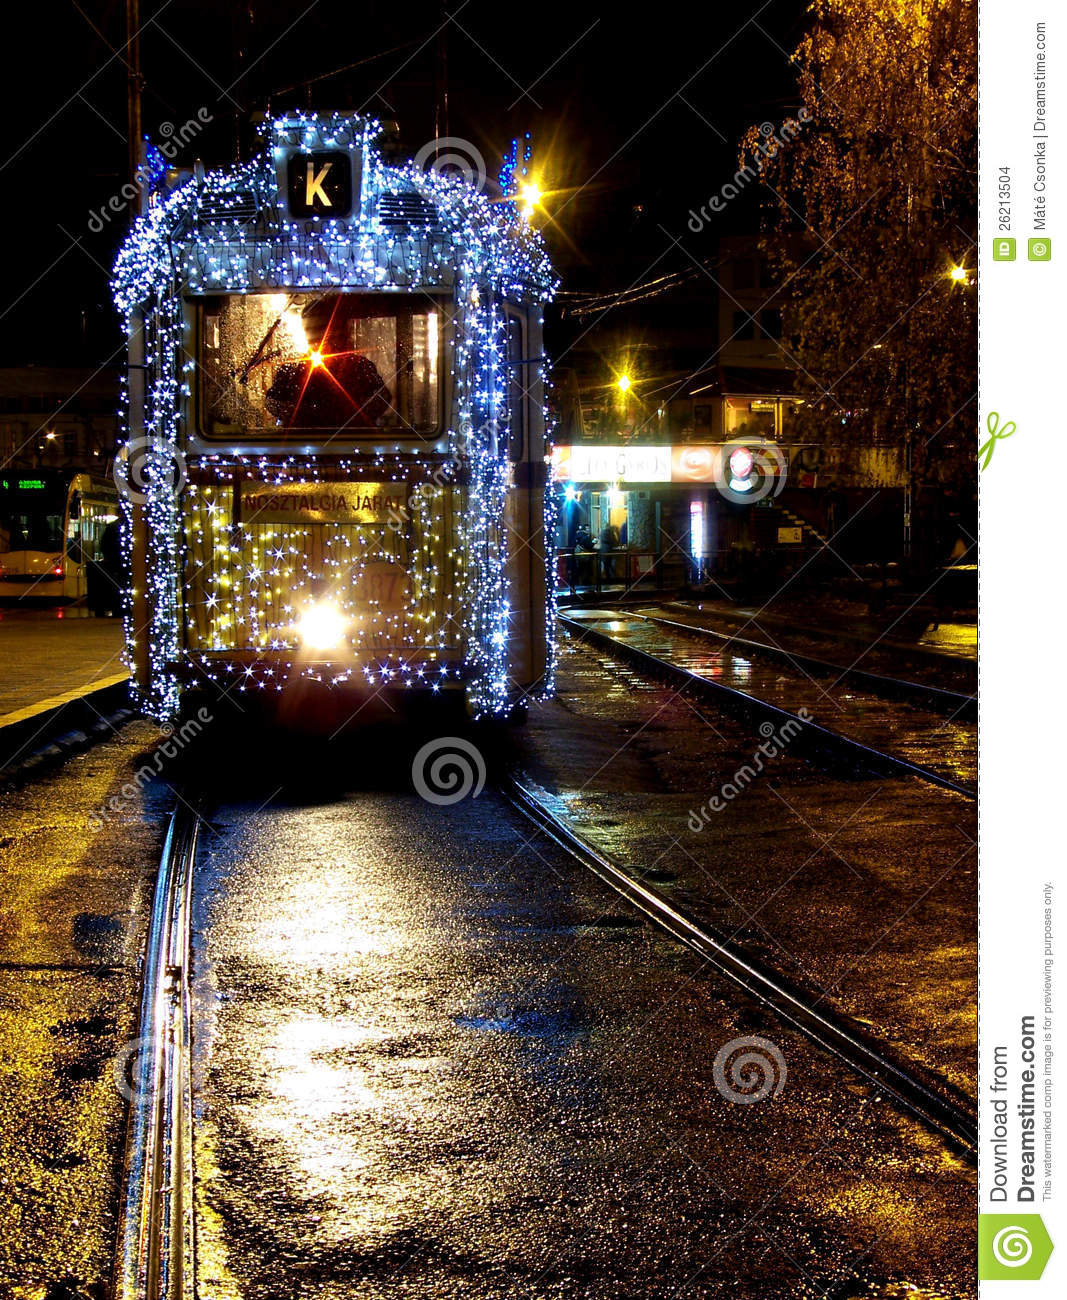 Tram with Christmas lights in Budapest